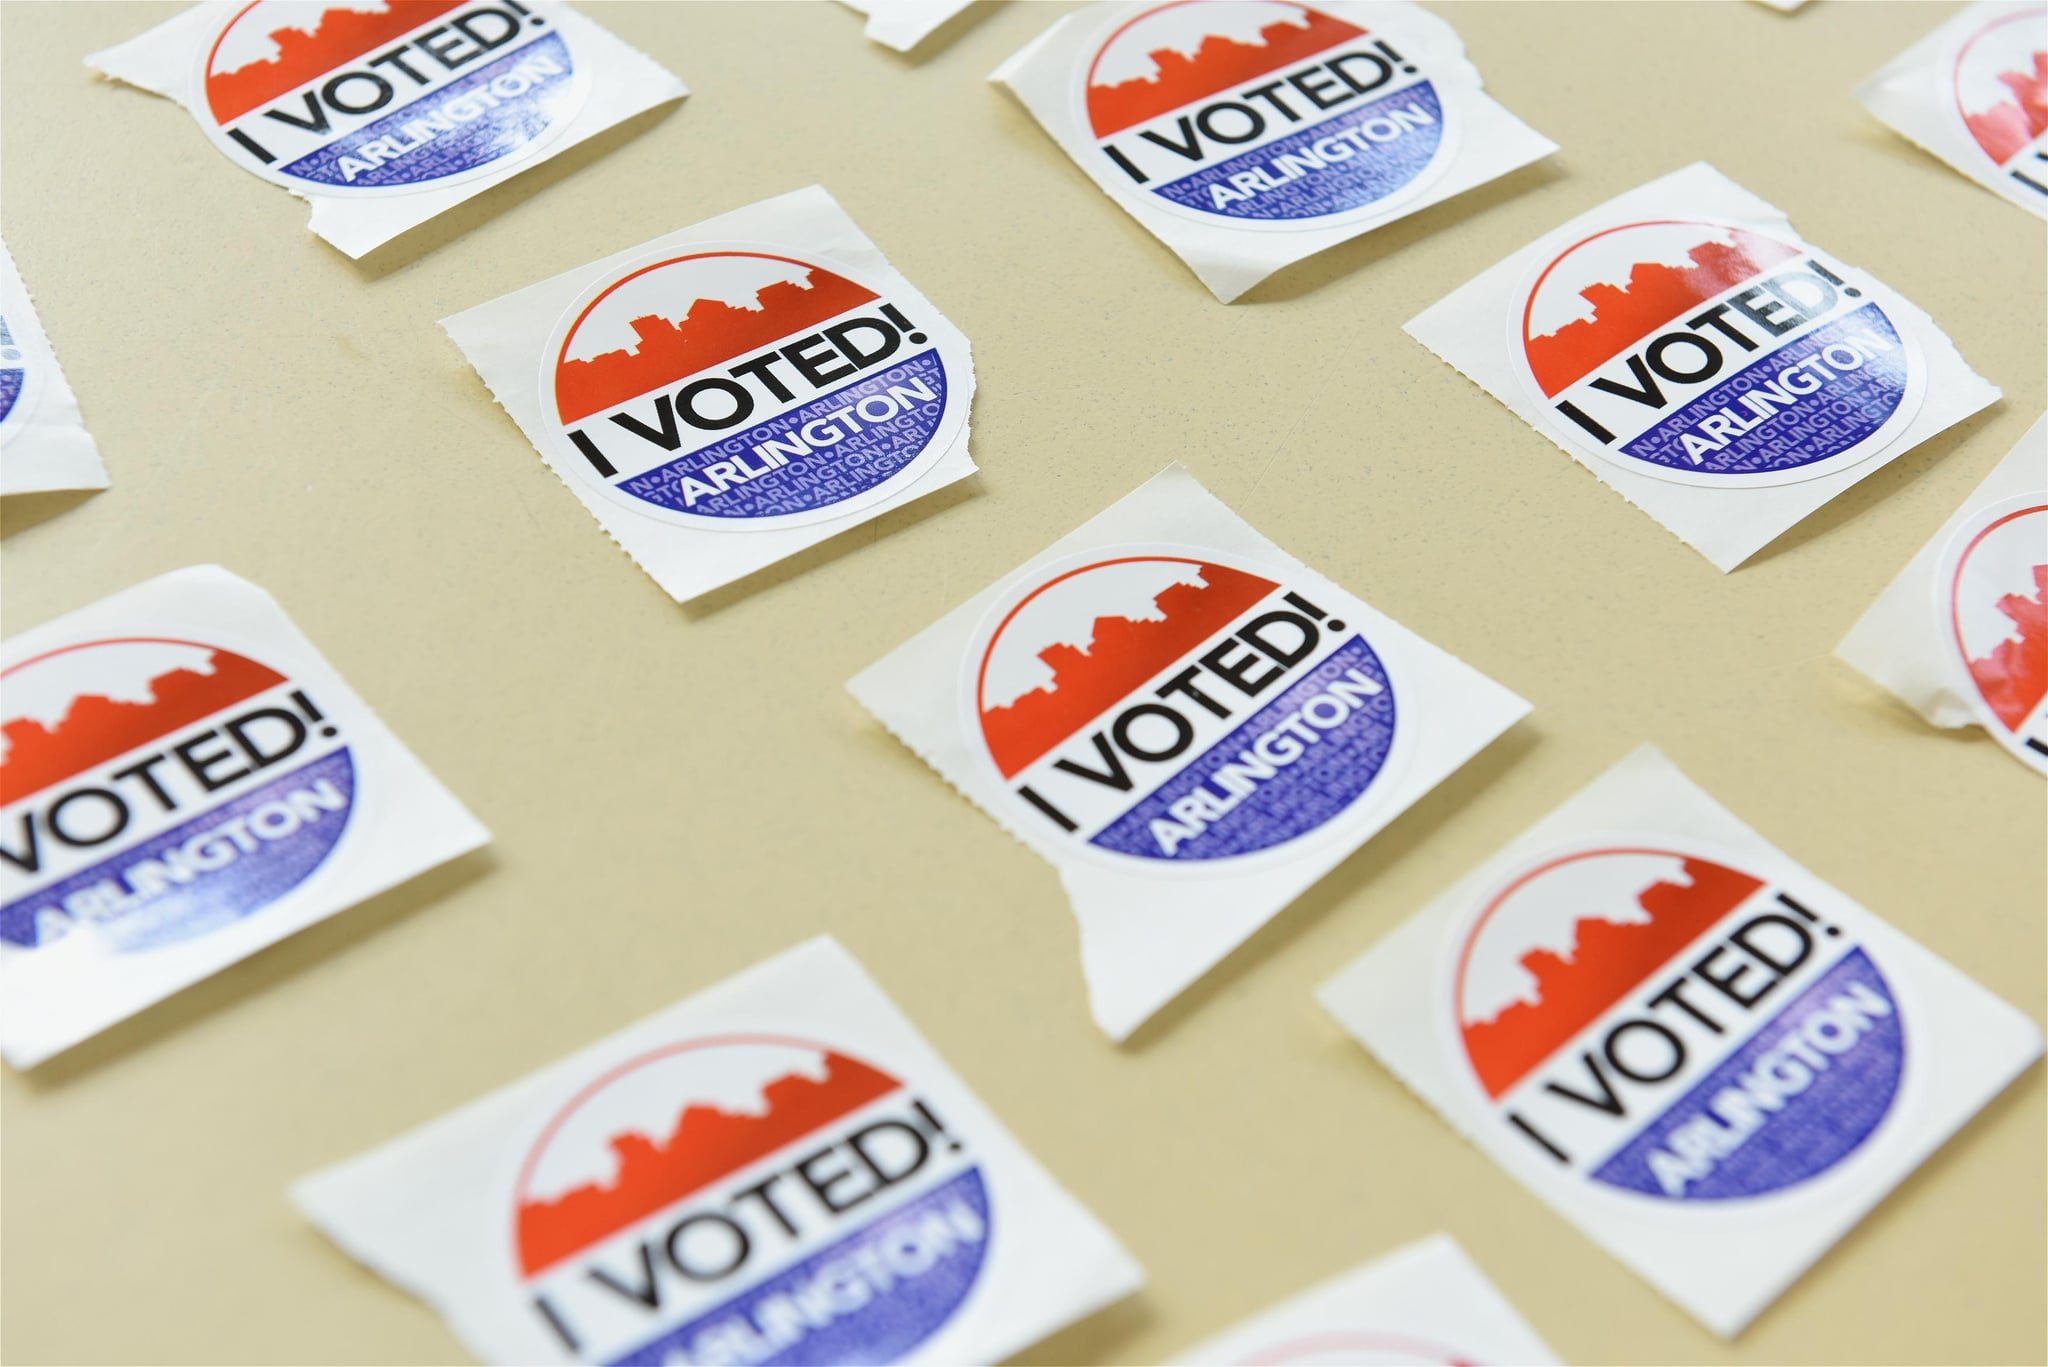 ARLINGTON, VIRGINIA - OCTOBER 31: 'I Voted' stickers are seen at a polling station during early voting for the U.S. Presidential election on October 31, 2020 in Arlington, United States. (Photo by Chen Mengtong/China News Service via Getty Images)